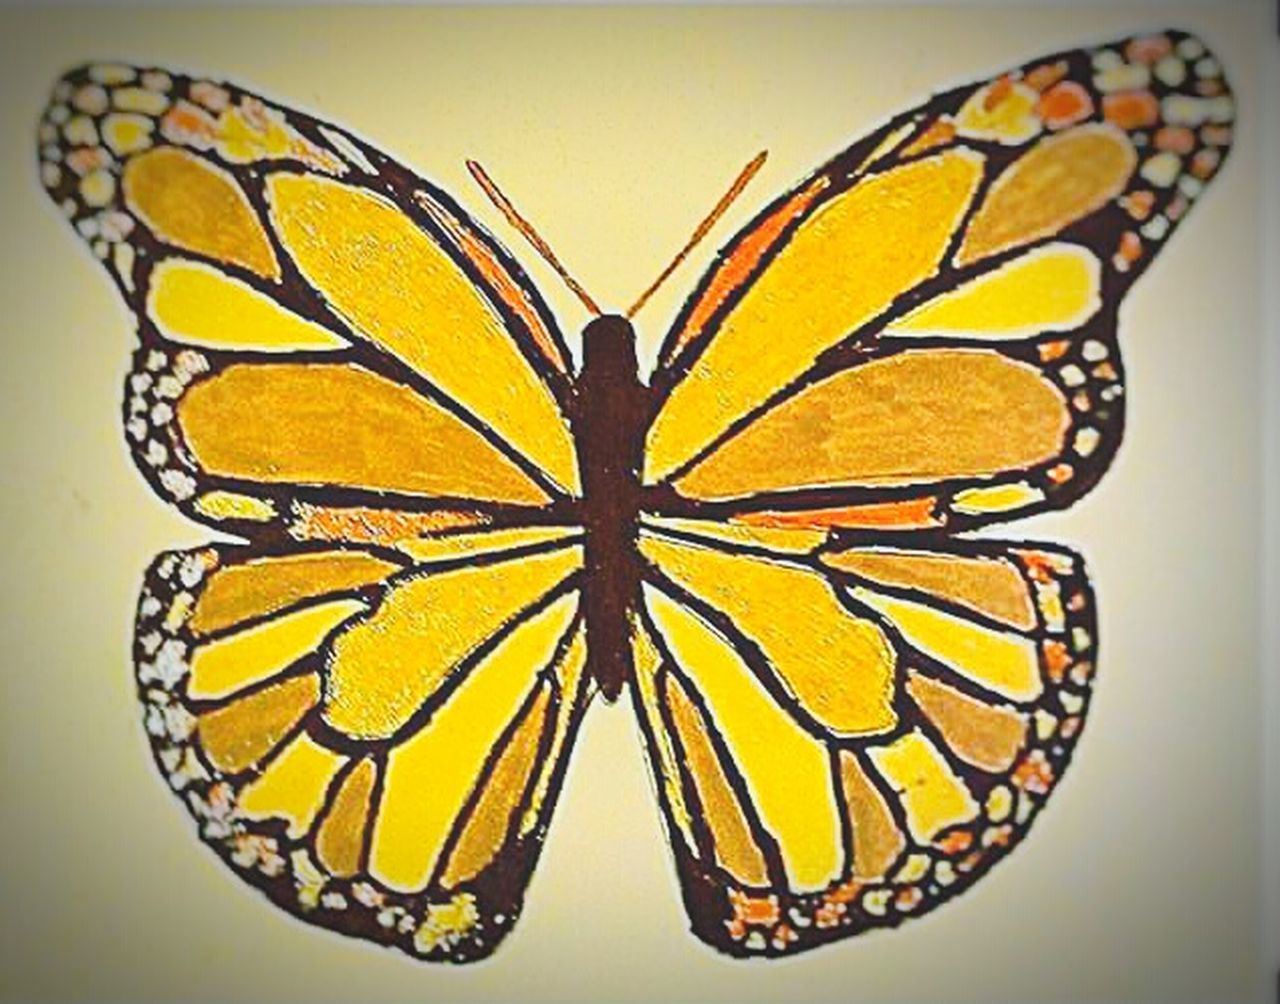 I colored this Butterfly - Insect